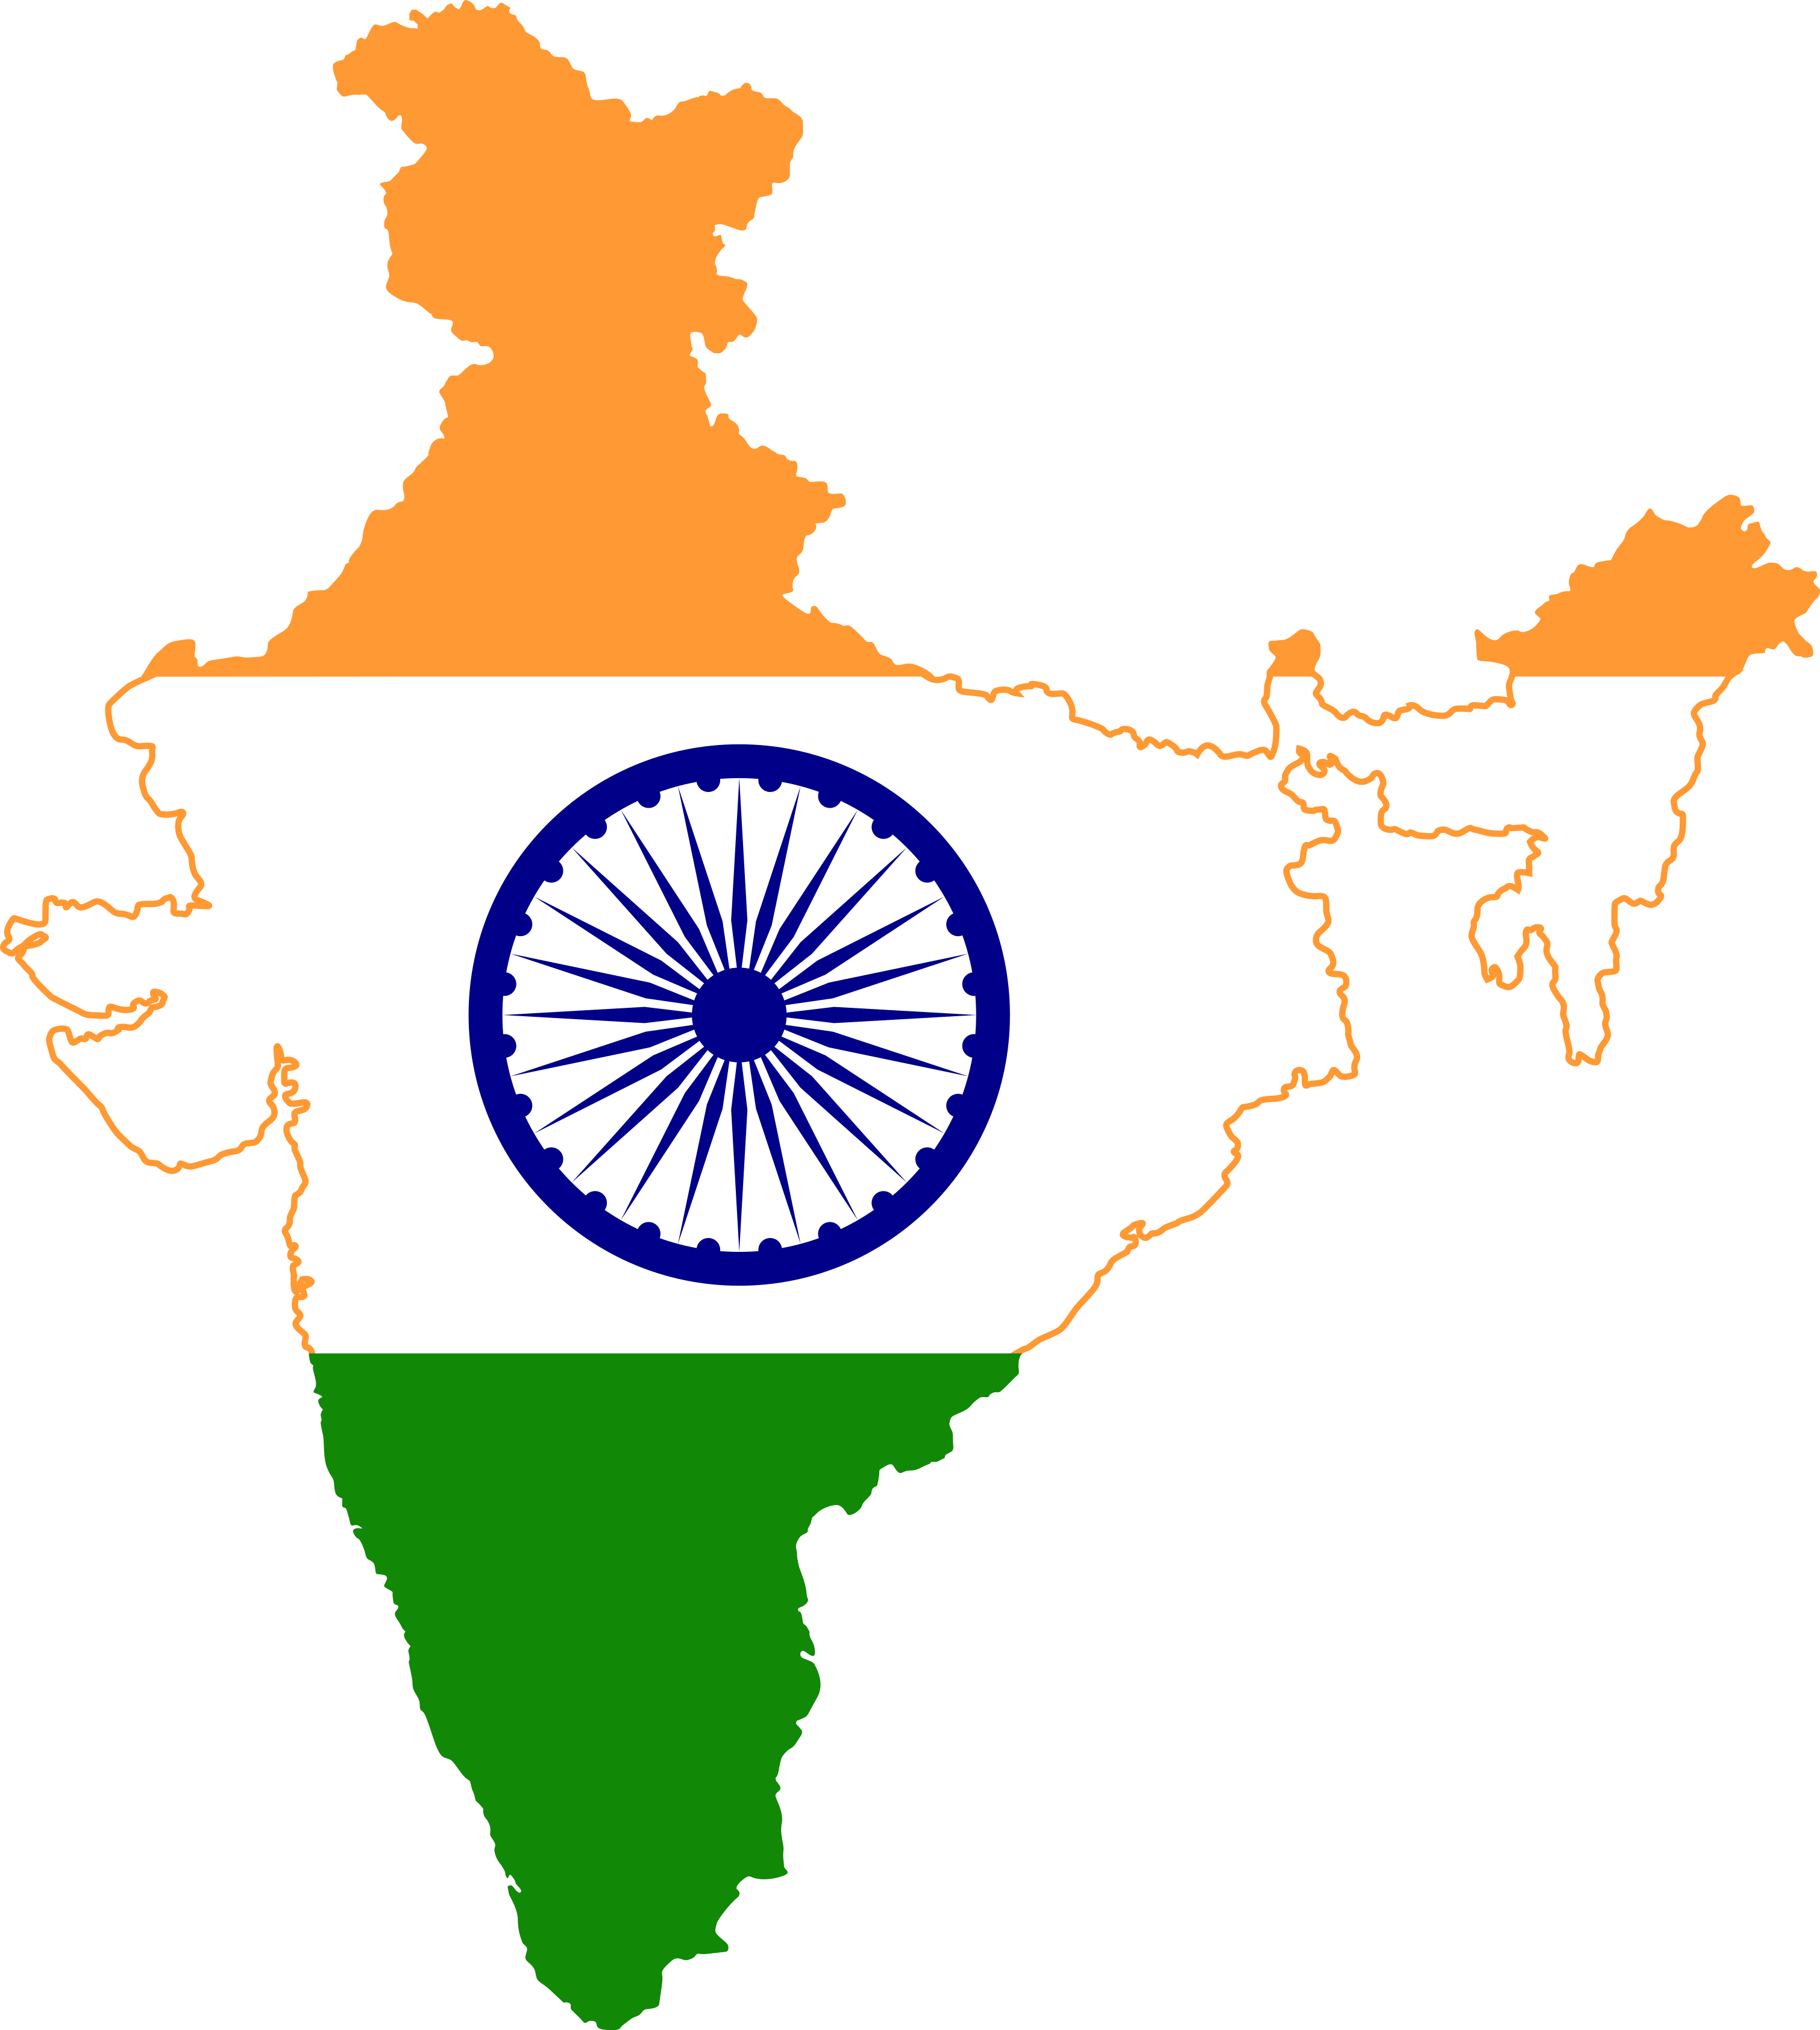 Related image India map, Indian flag, 15 august